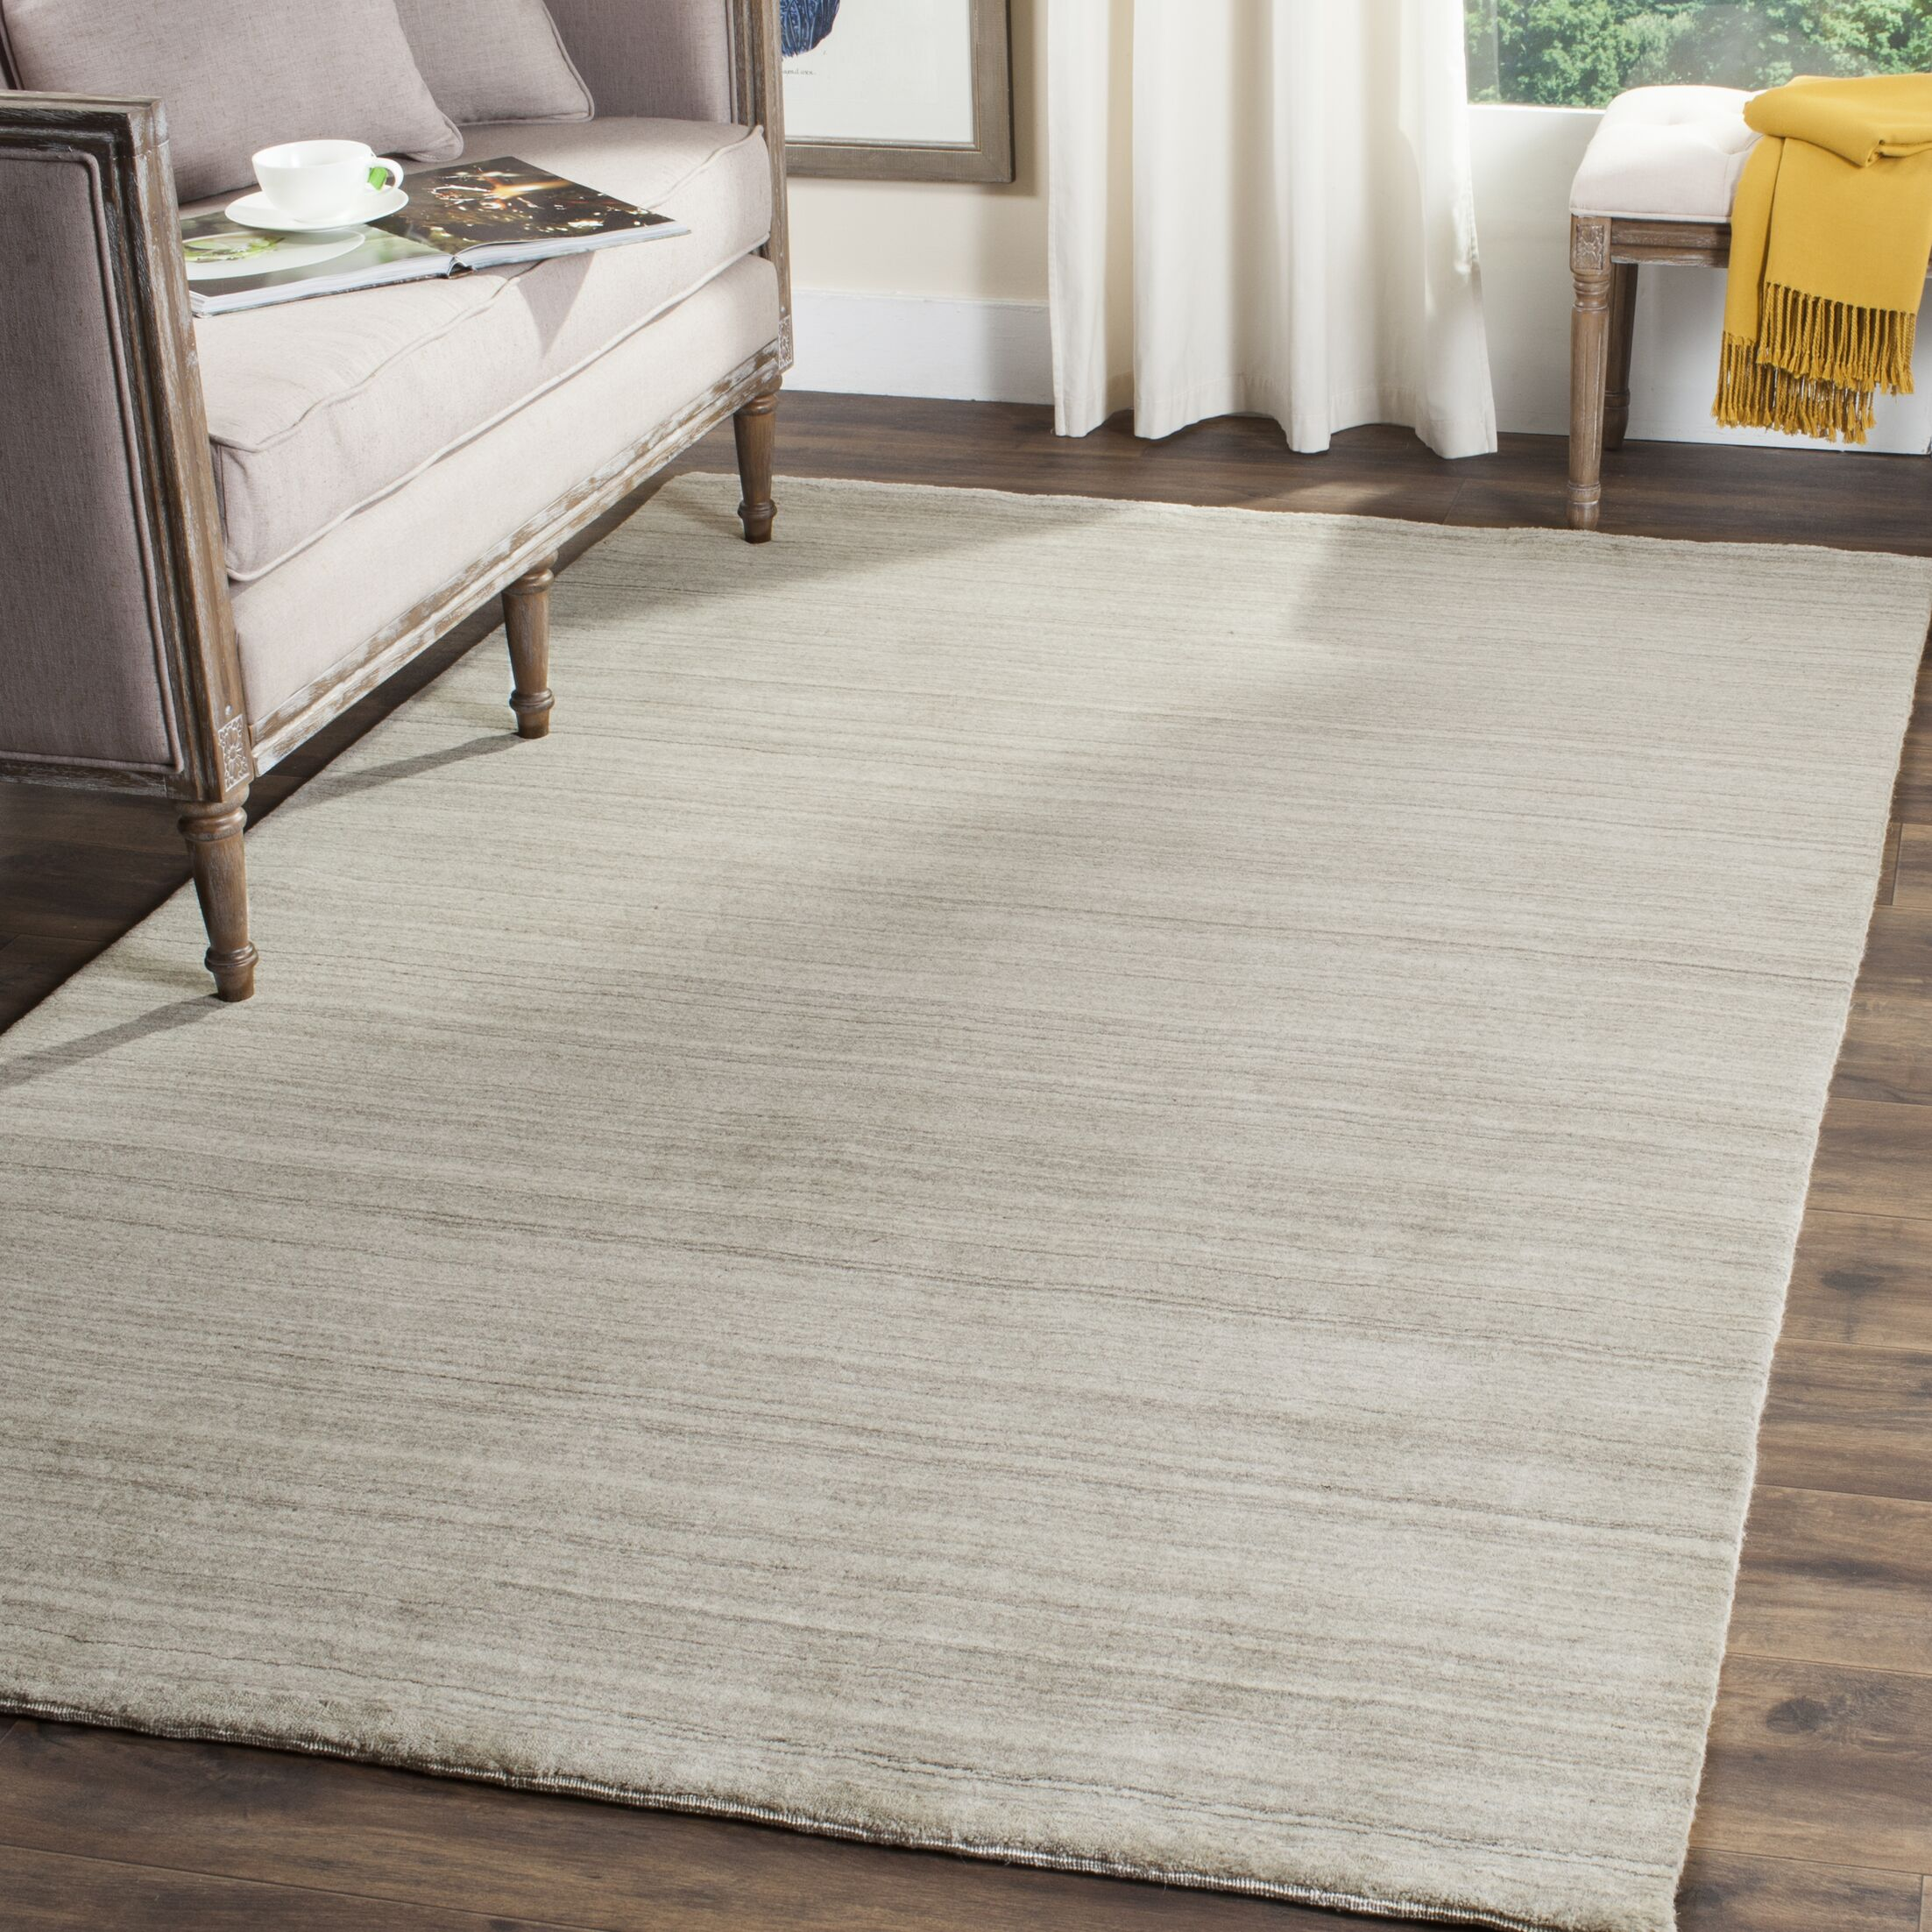 Aghancrossy Hand-Loomed Stone Area Rug Rug Size: Rectangle 6' x 9'